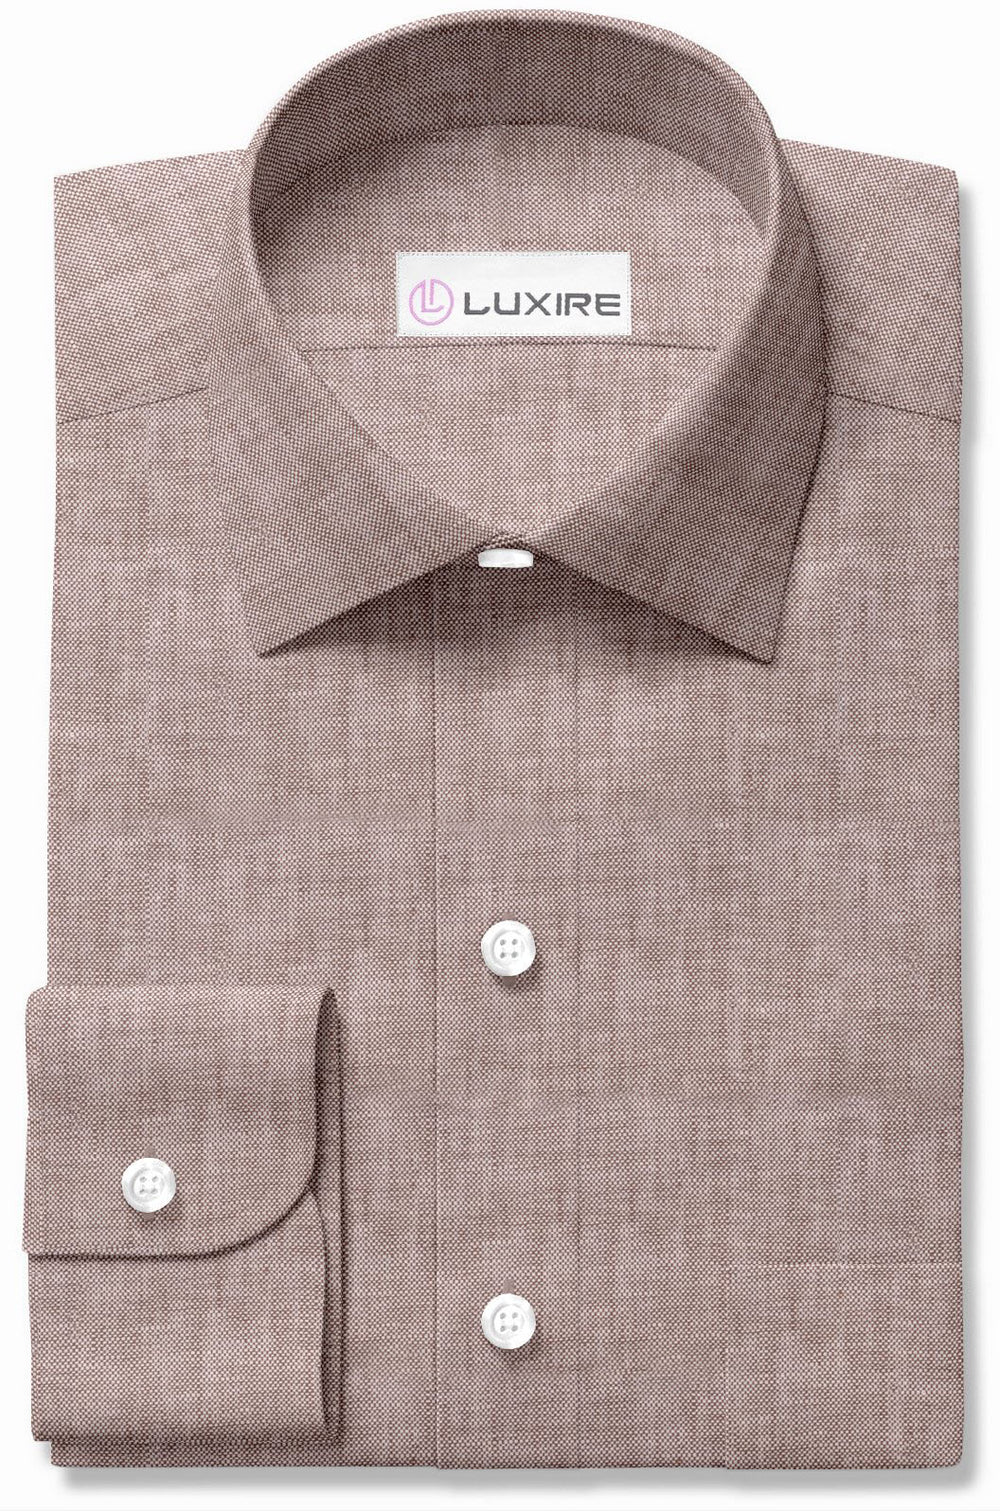 Linen:Brown White Light Canvas (687421956)